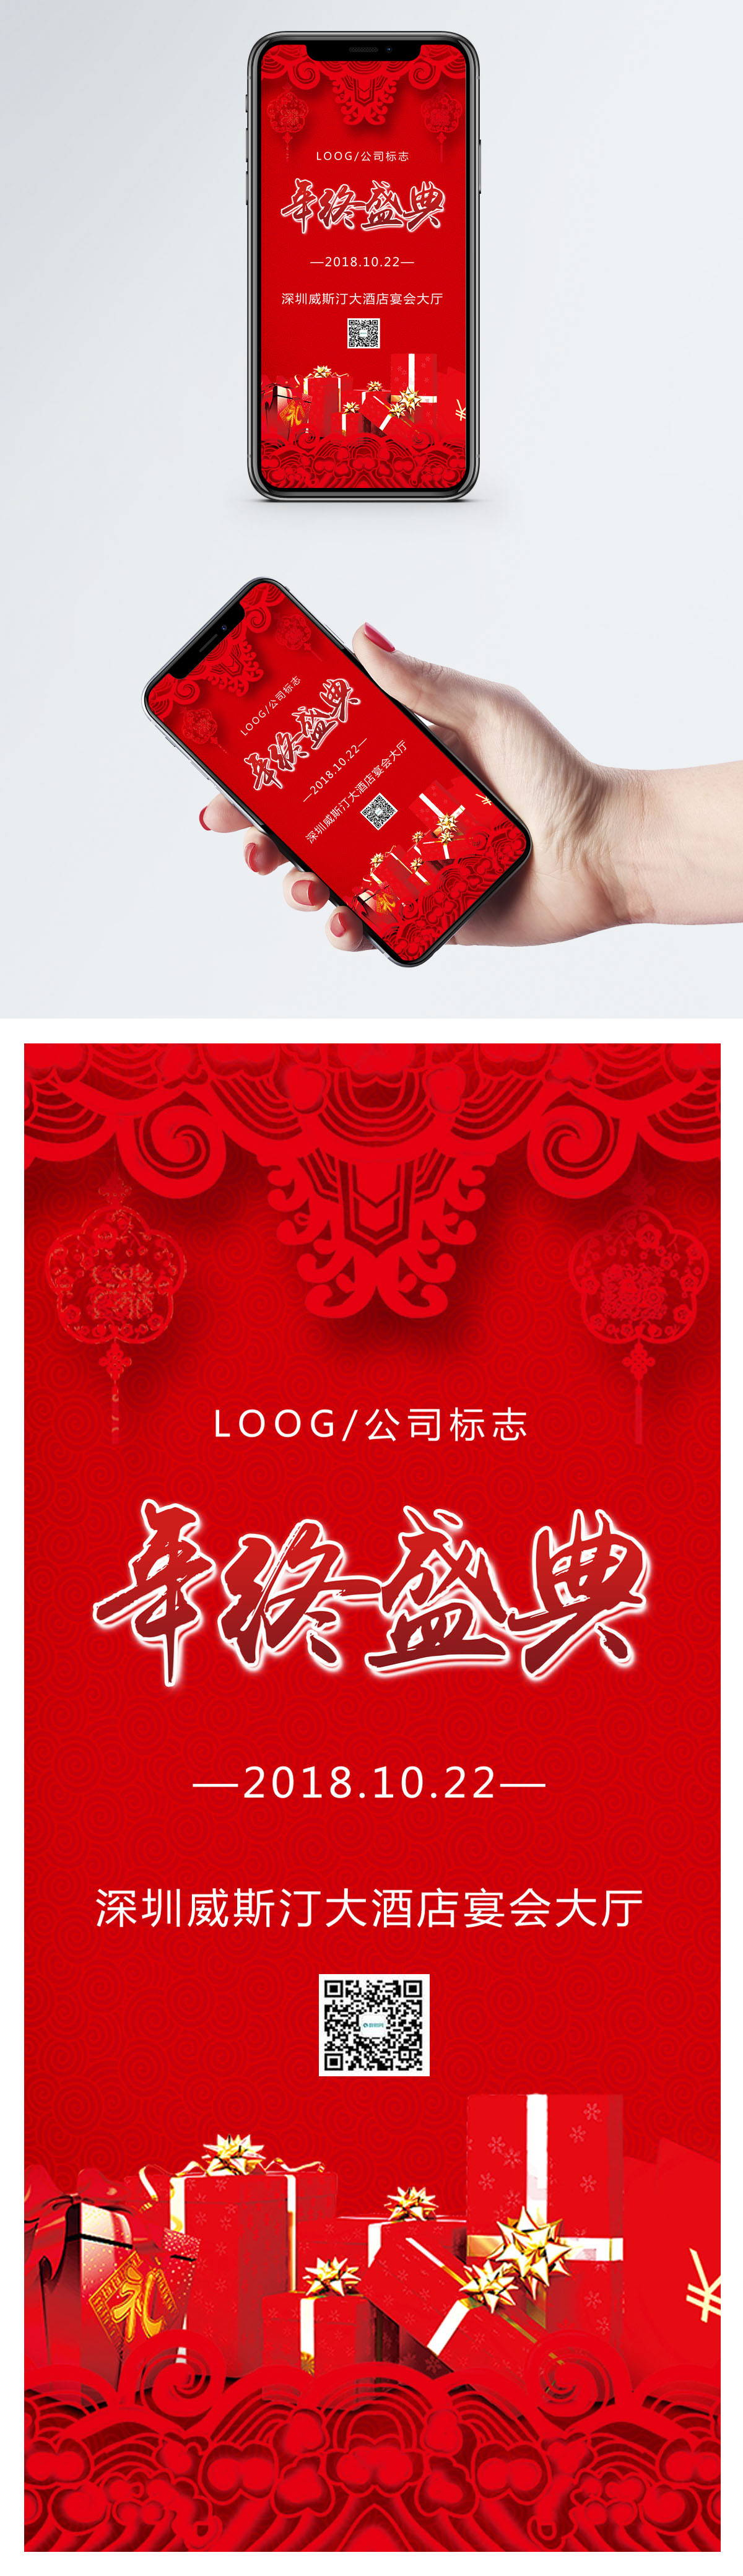 invitation letter of the year end grand ceremony image picture